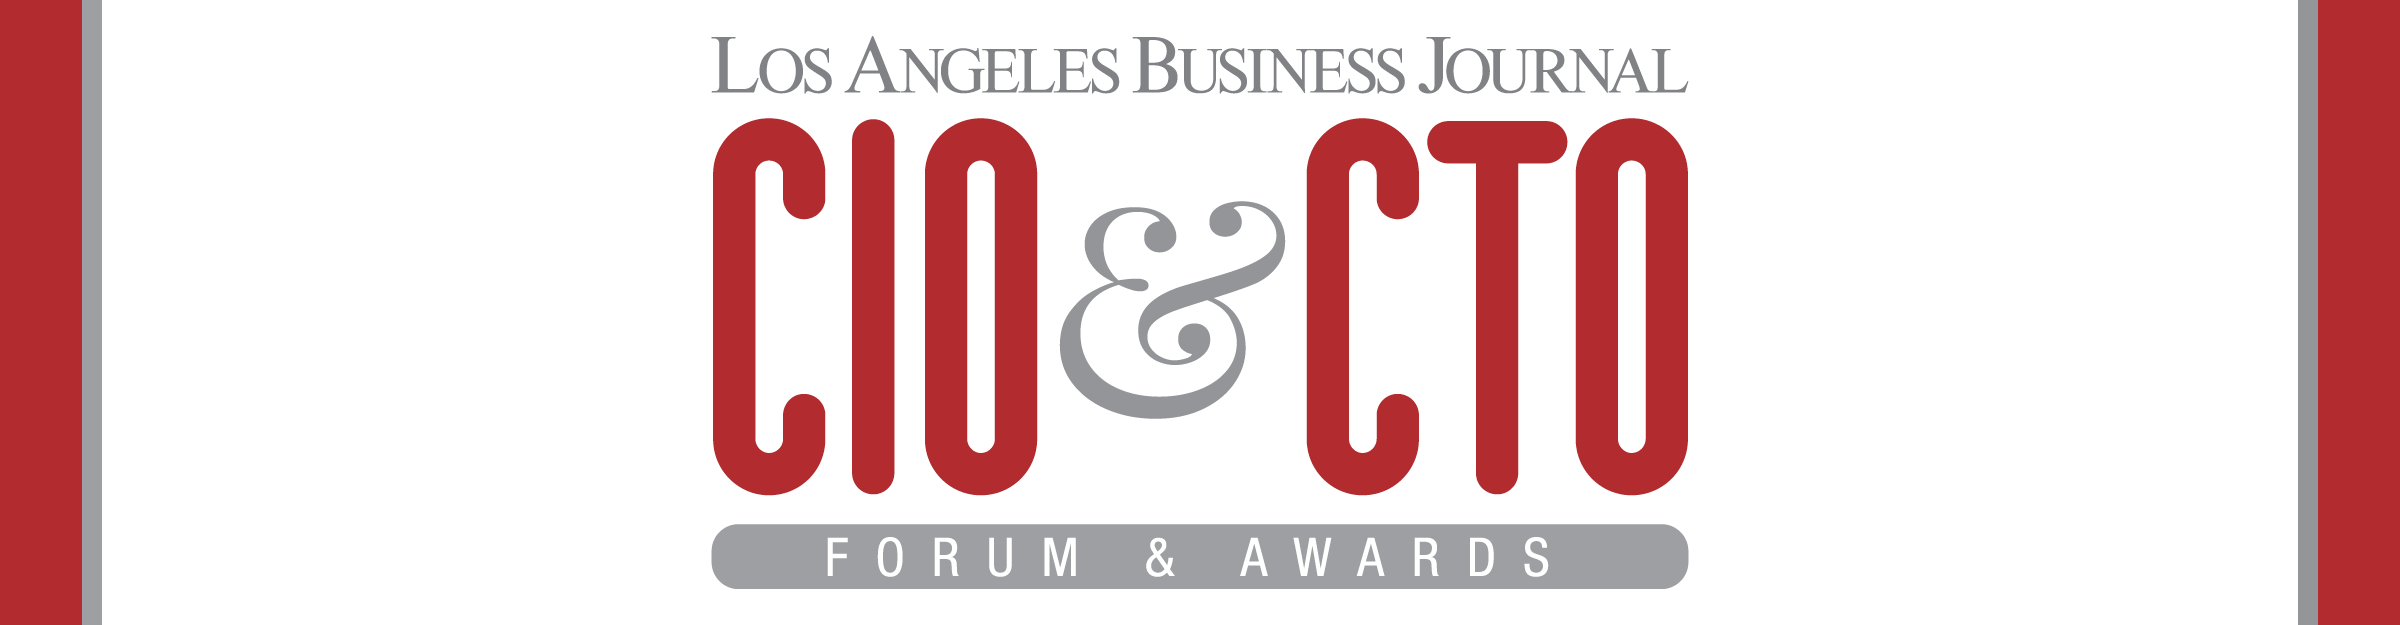 Los Angeles Business Journal NAME OF EVENT Awards Event Banner